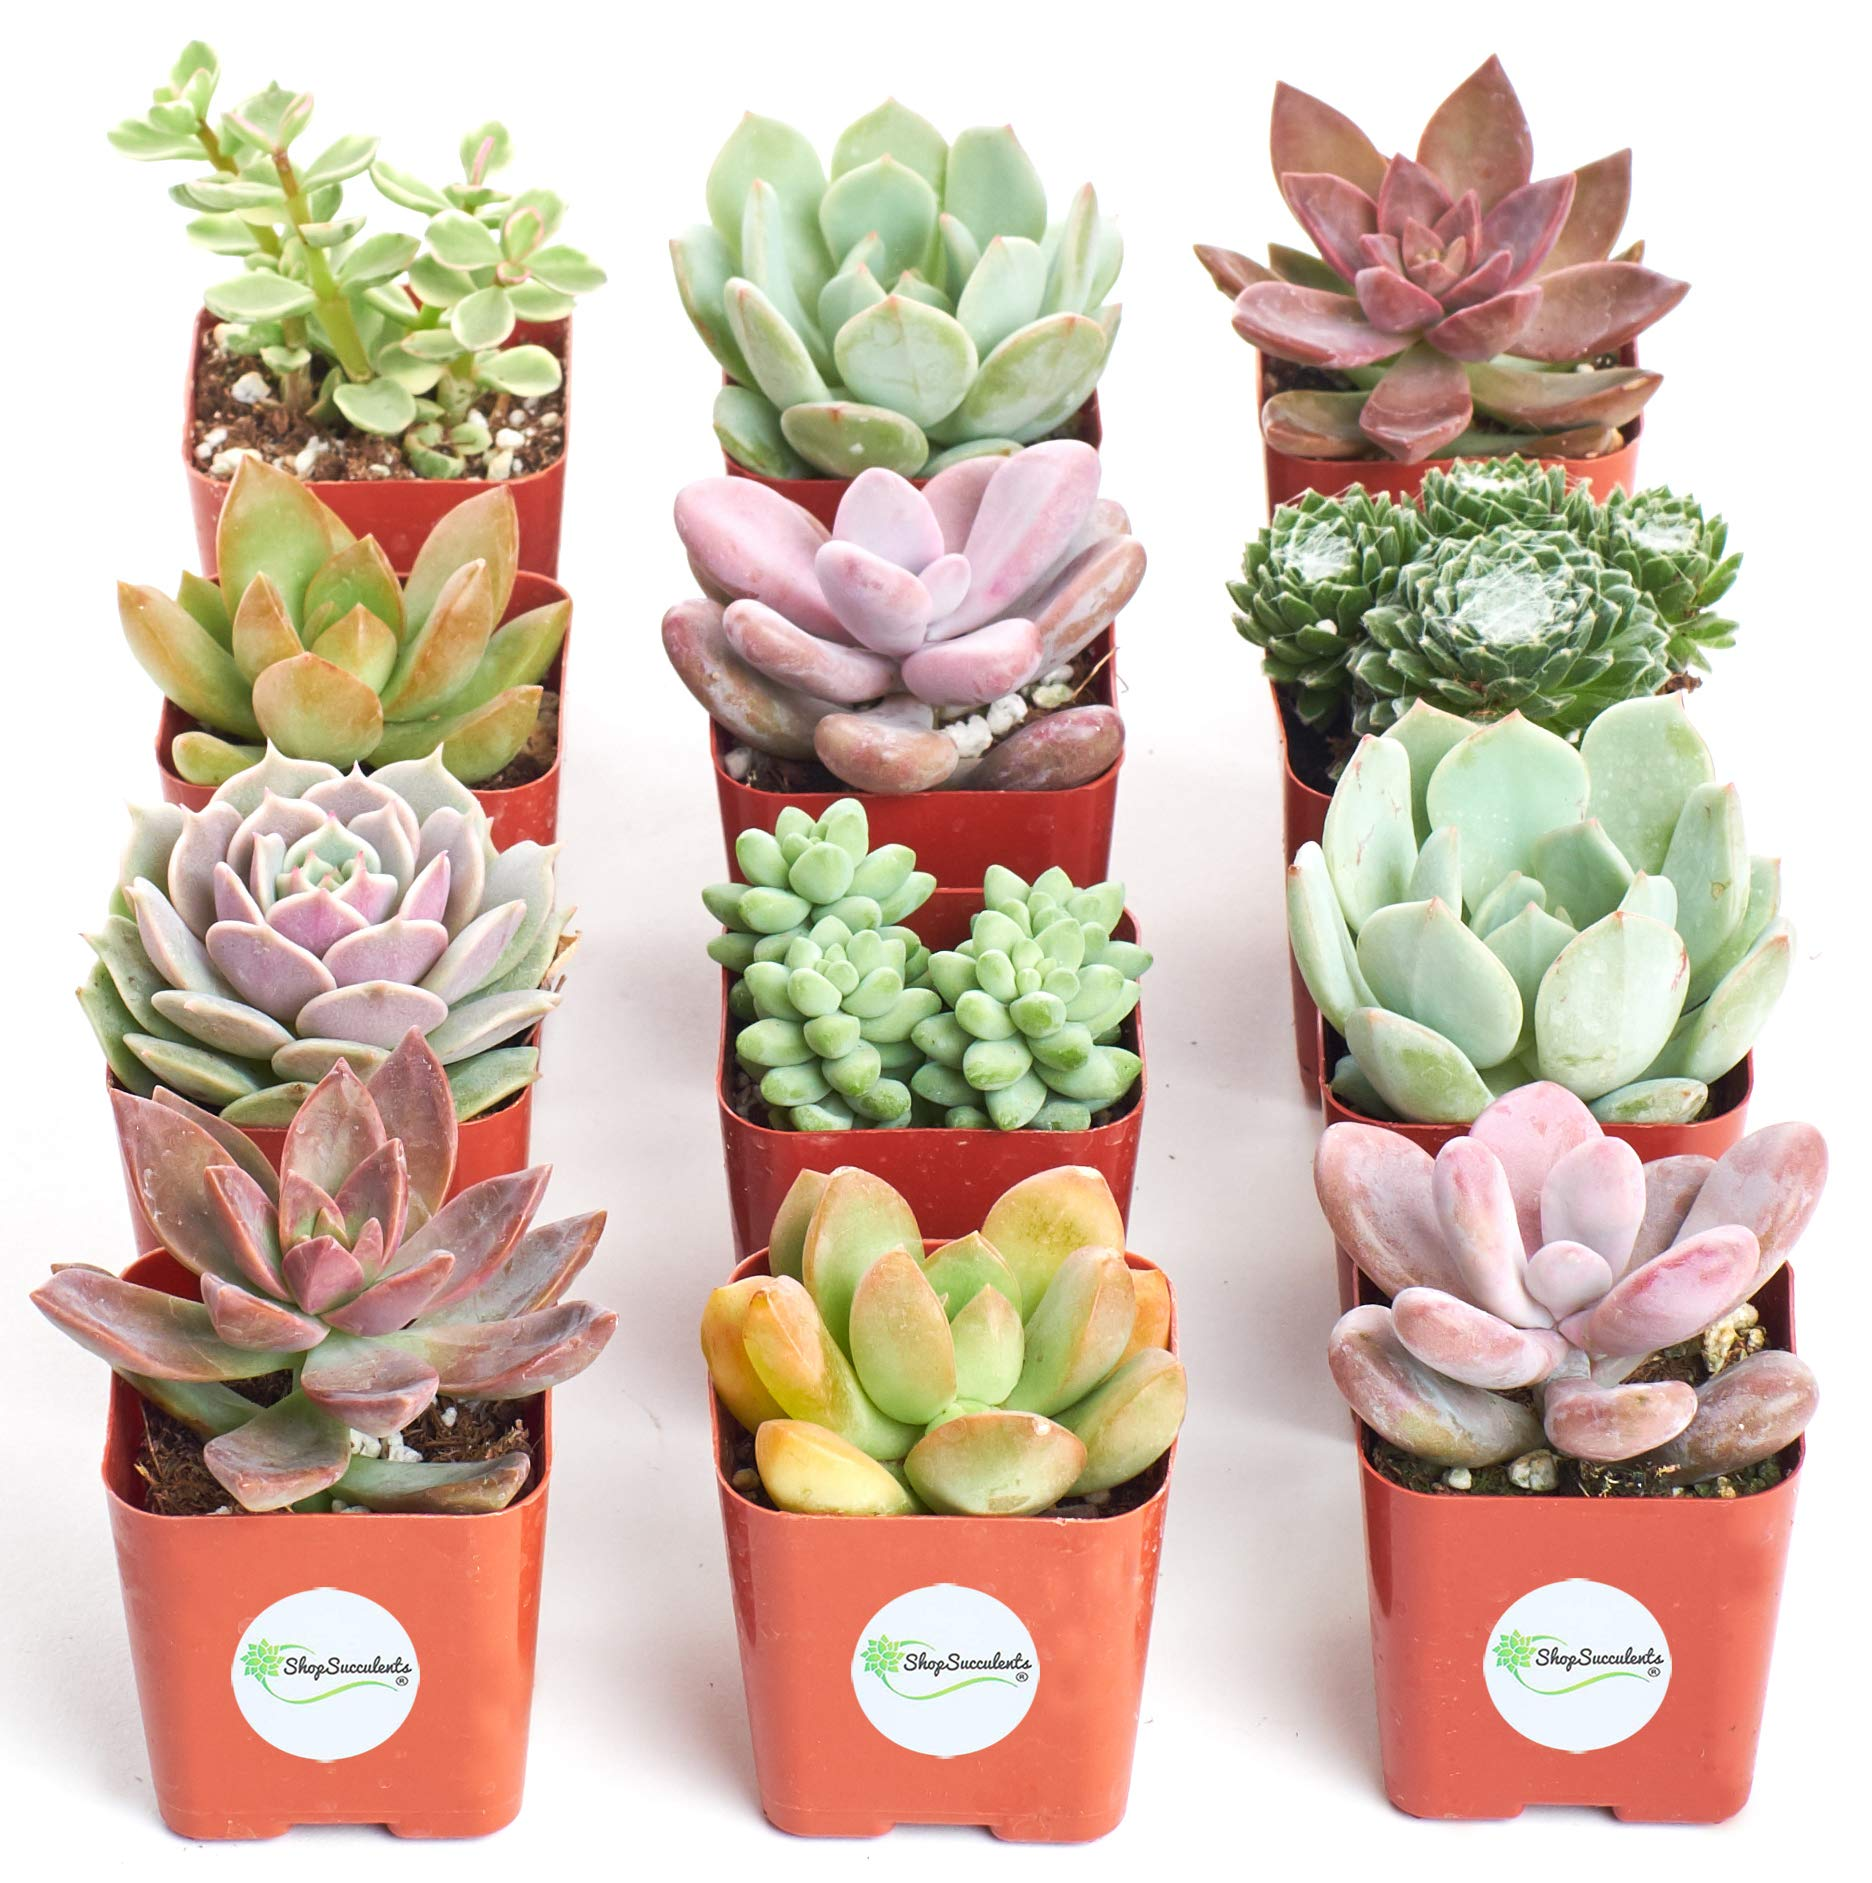 Shop Succulents| Premium Pastel Collection of LiveSucculent Plants, Hand Selected Variety Pack of Mini Succulents | Collection of 12 in 2'' pots